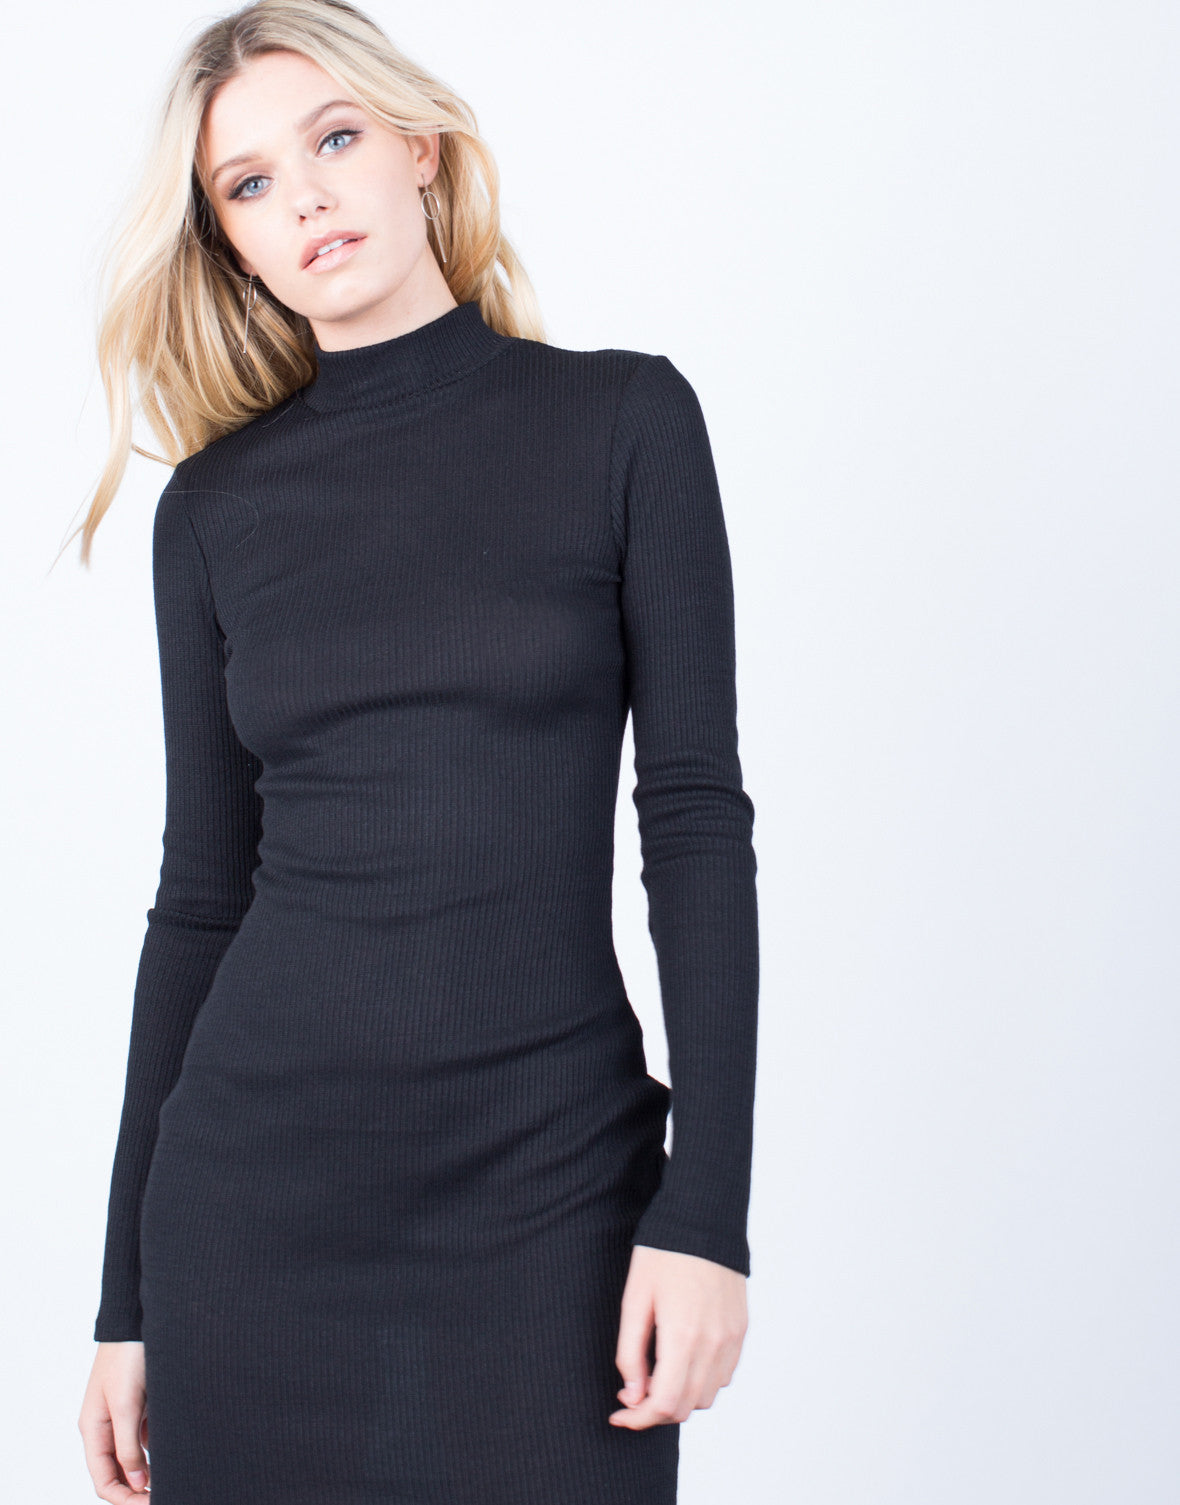 Detail of Your Go-To Black Dress